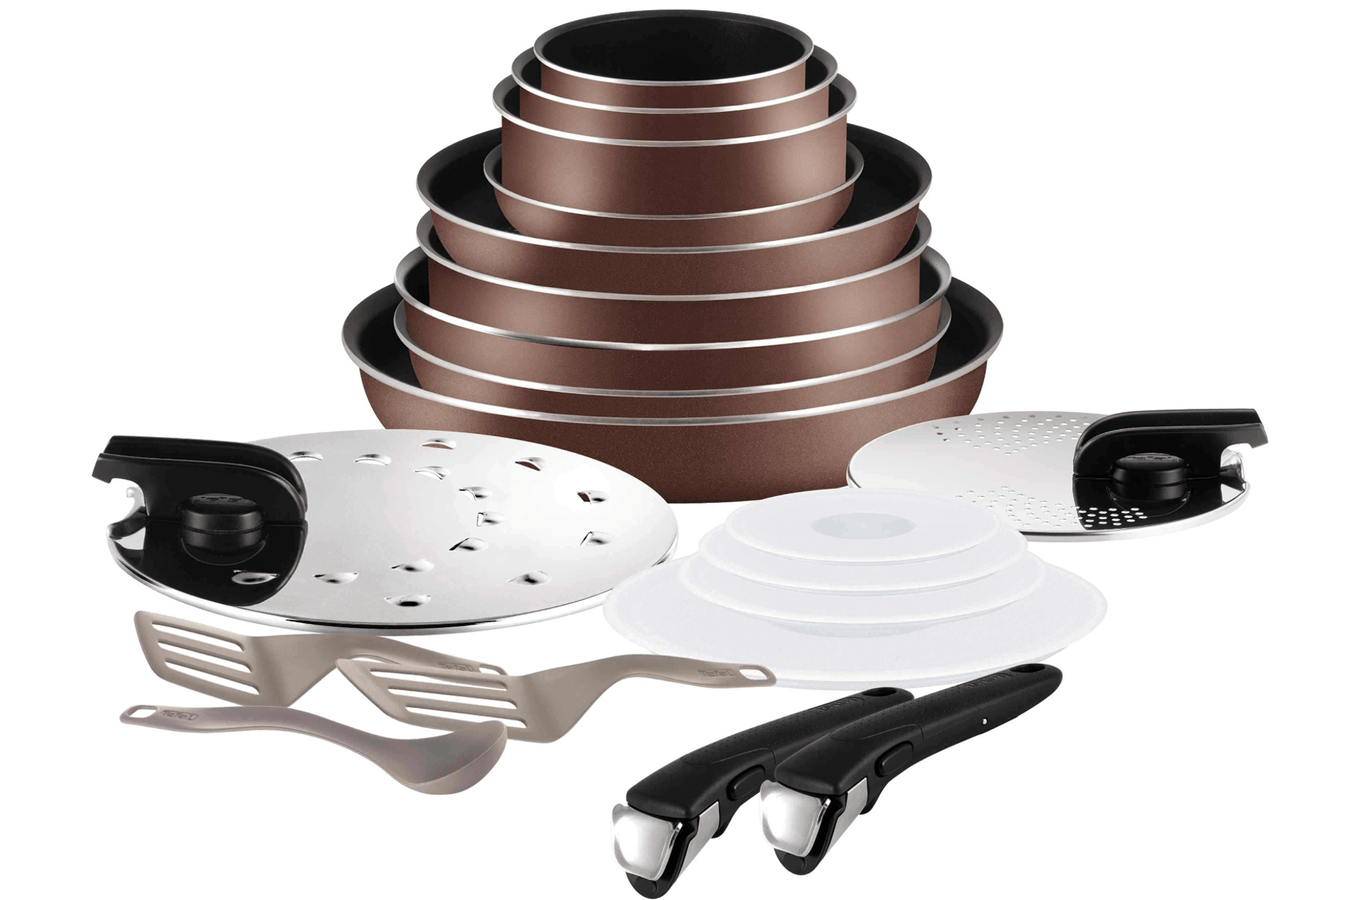 Poele Sauteuse Tefal Tefal Ingenio 20 Pieces Induction 28 Images Poele Sauteuse